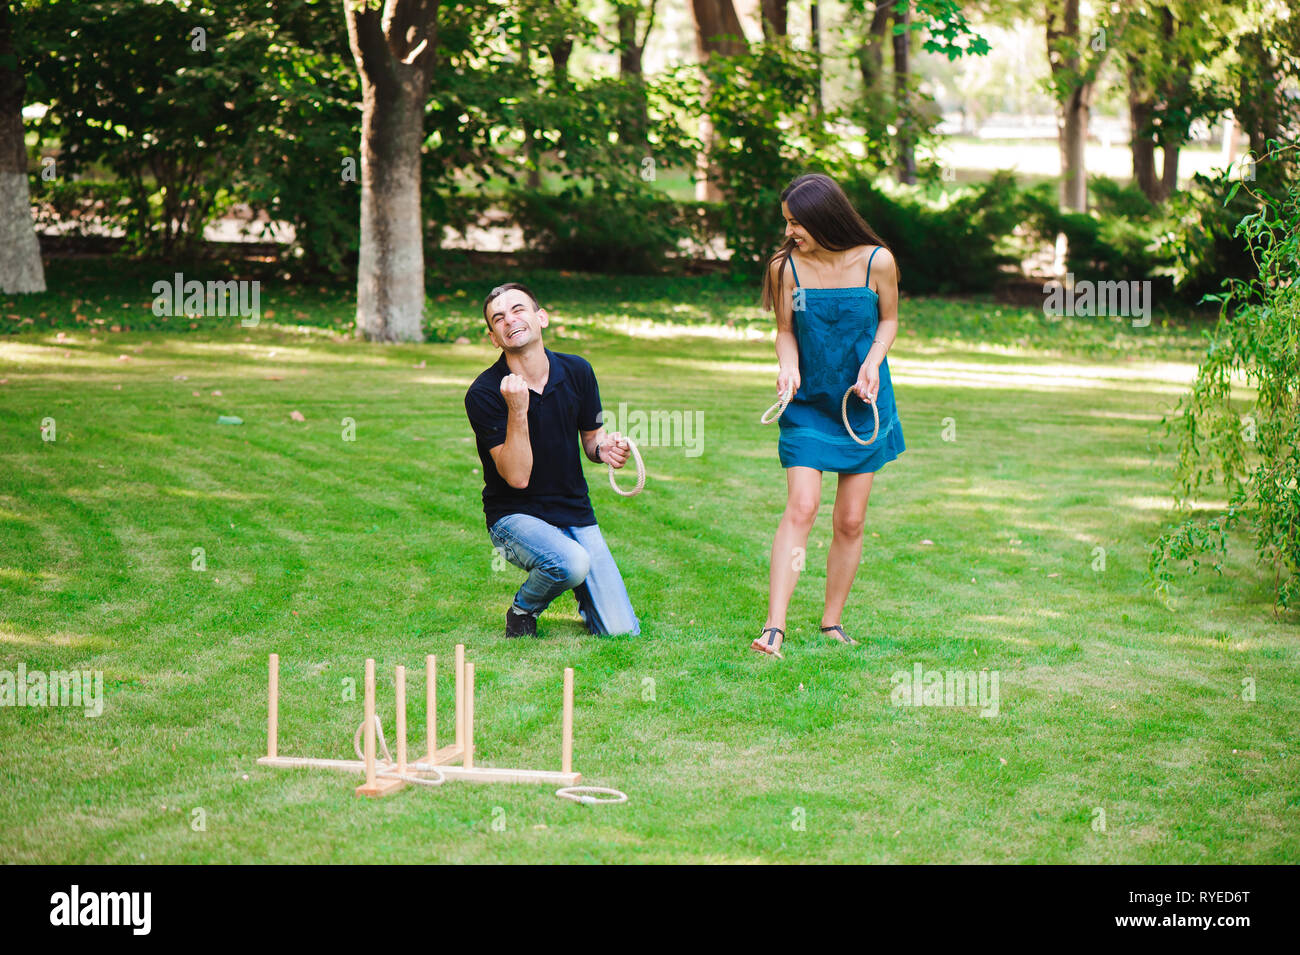 Guy and girl compete in the ring toss. - Stock Image